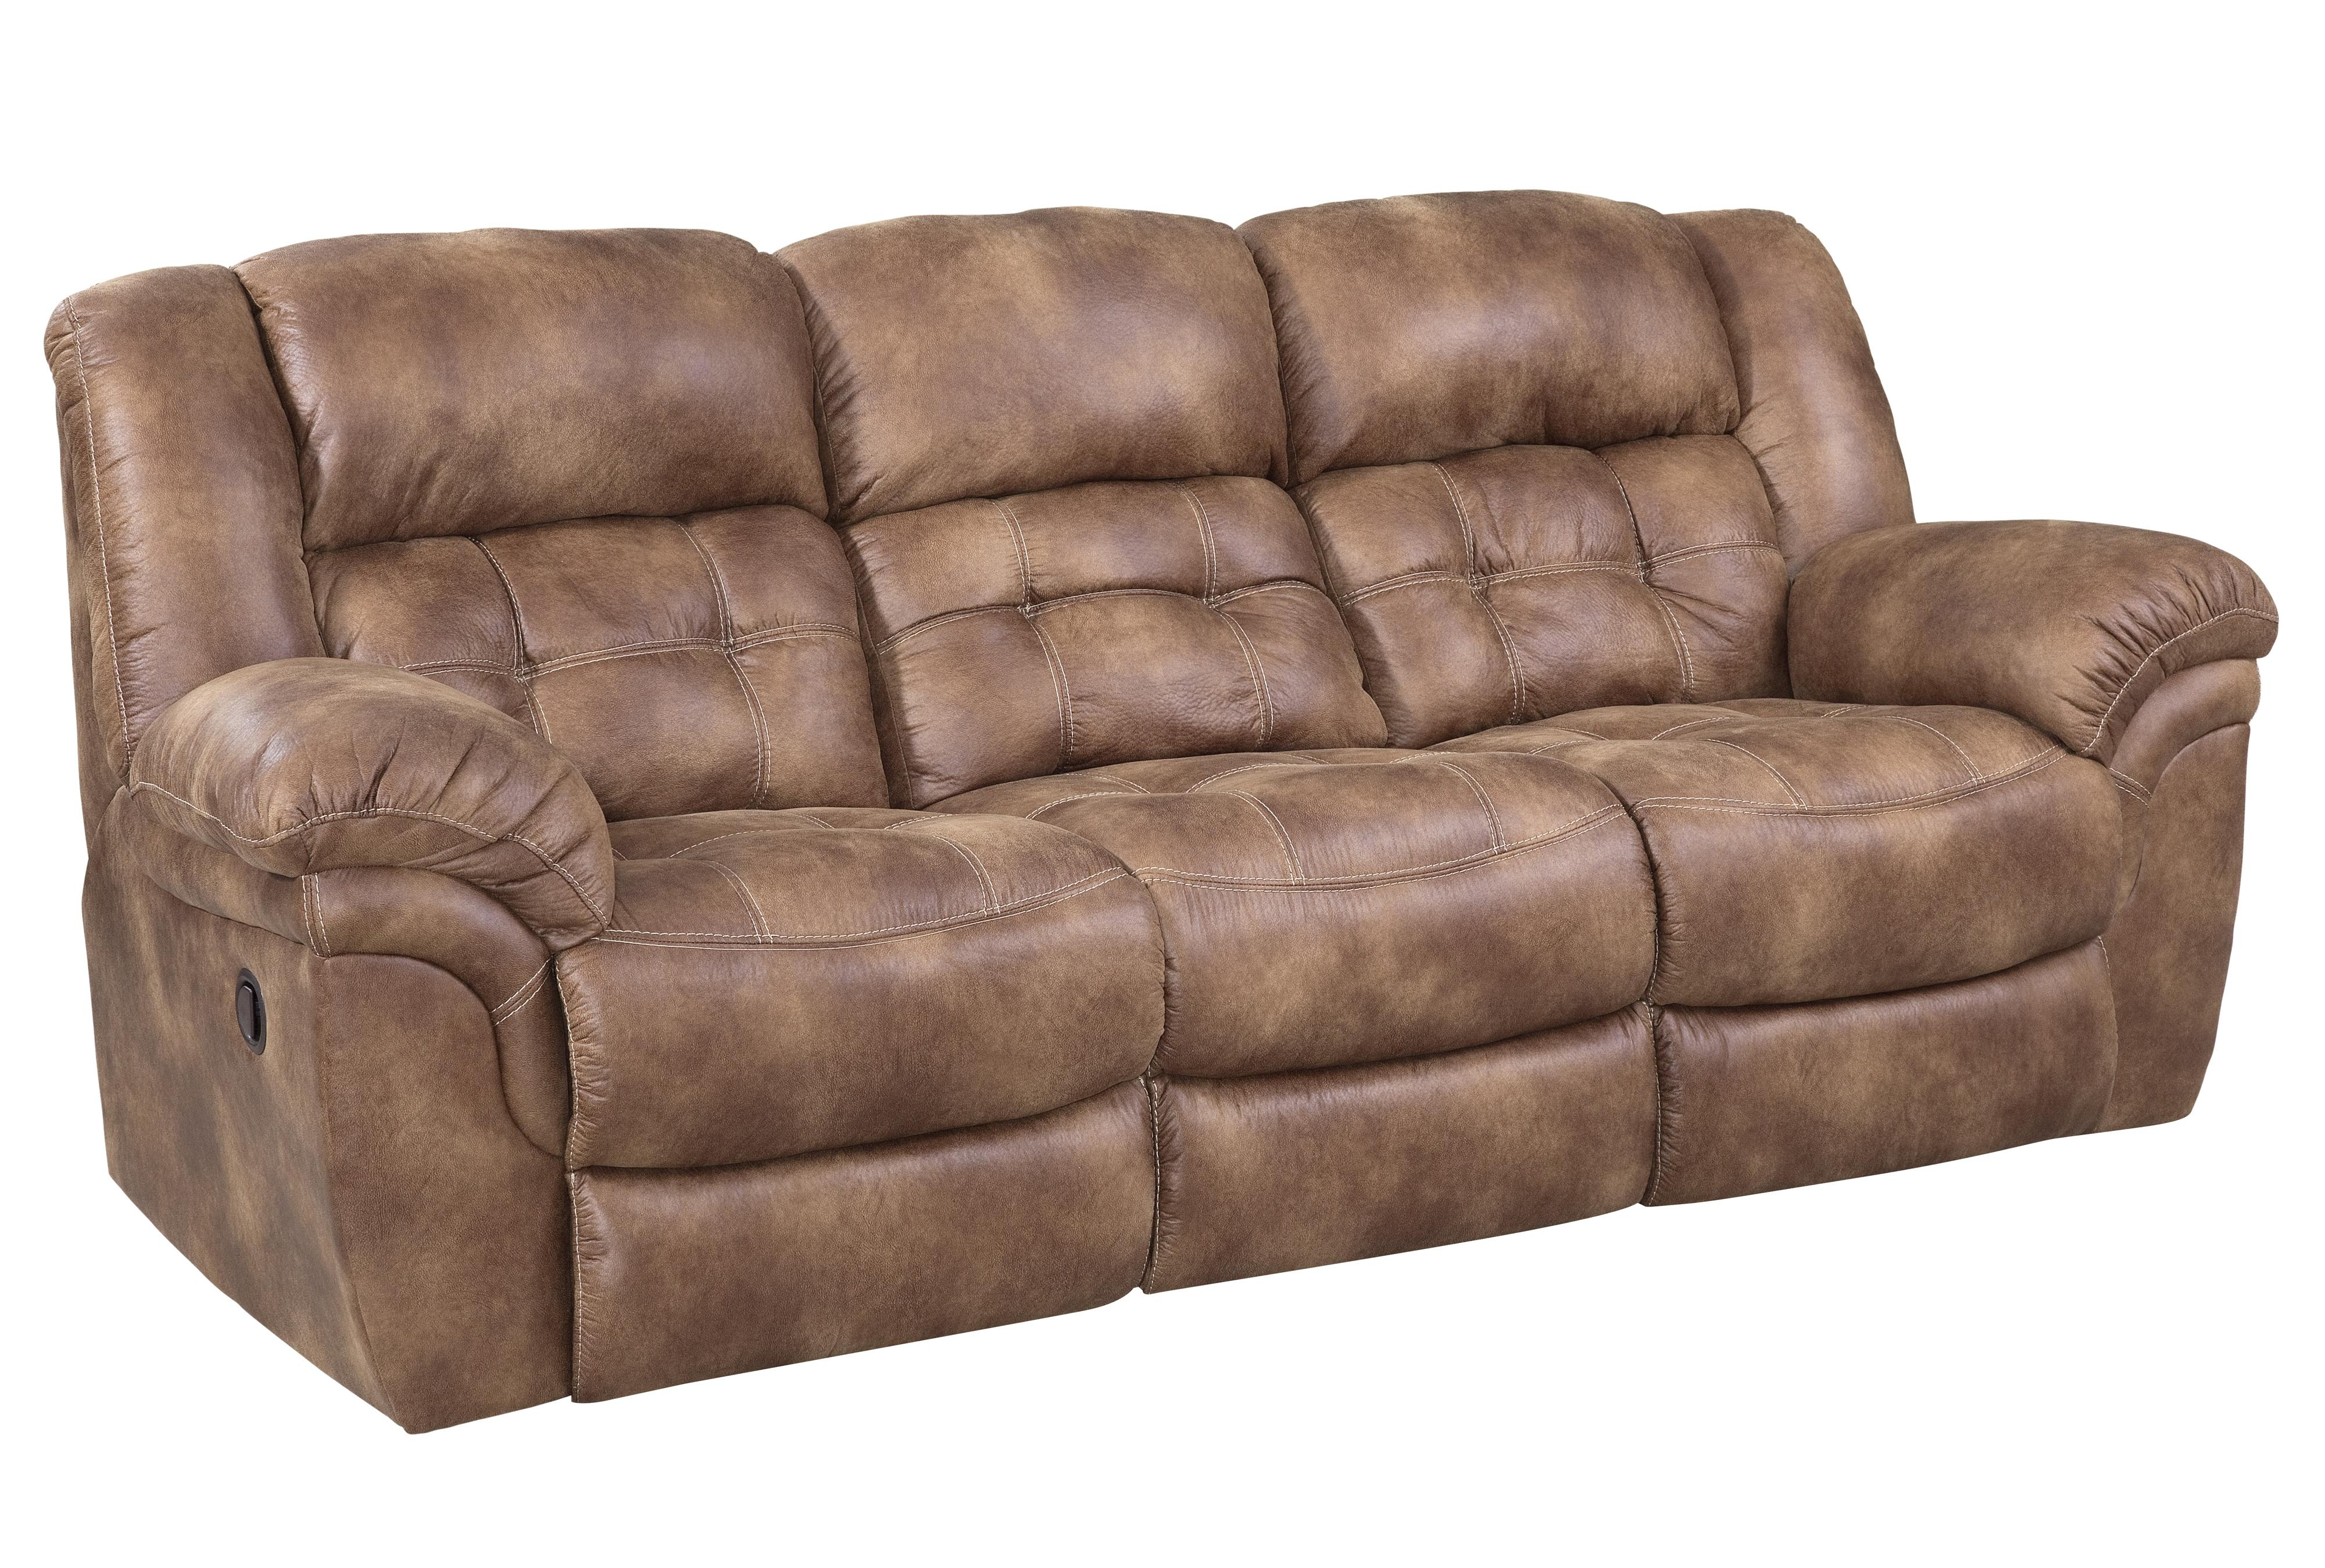 Kunstleder Couch Faux Leather Reclining Sofa By Homestretch | Wolf Furniture